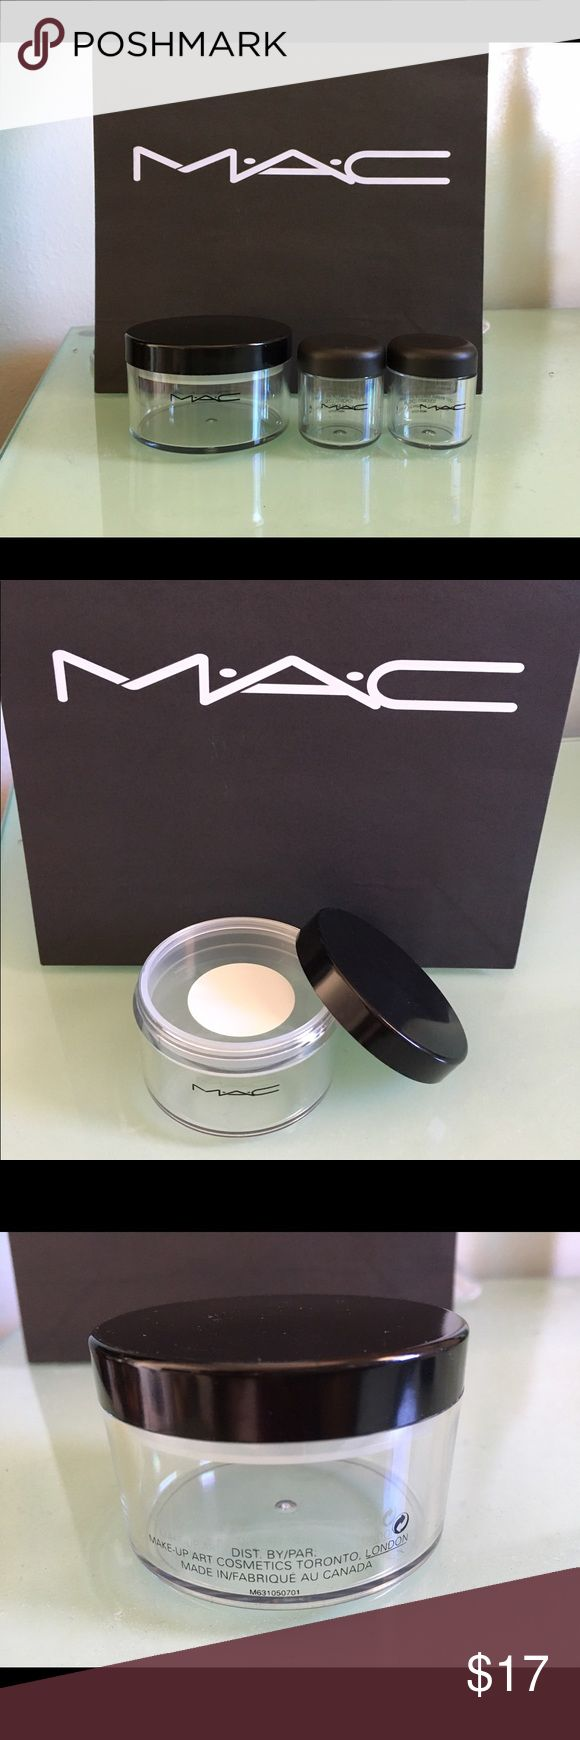 MAC Cosmetics Makeup Containers Authentic MAC Cosmetics plastic makeup containers. Large Loose powder container has plastic sifter (see picture which has round white tape over sifter area), Made in Canada. Other 2 containers has plastic cover (see picture) to keep contents contained; good to hold pigments, Made in USA. MAC Cosmetics Makeup Brushes & Tools